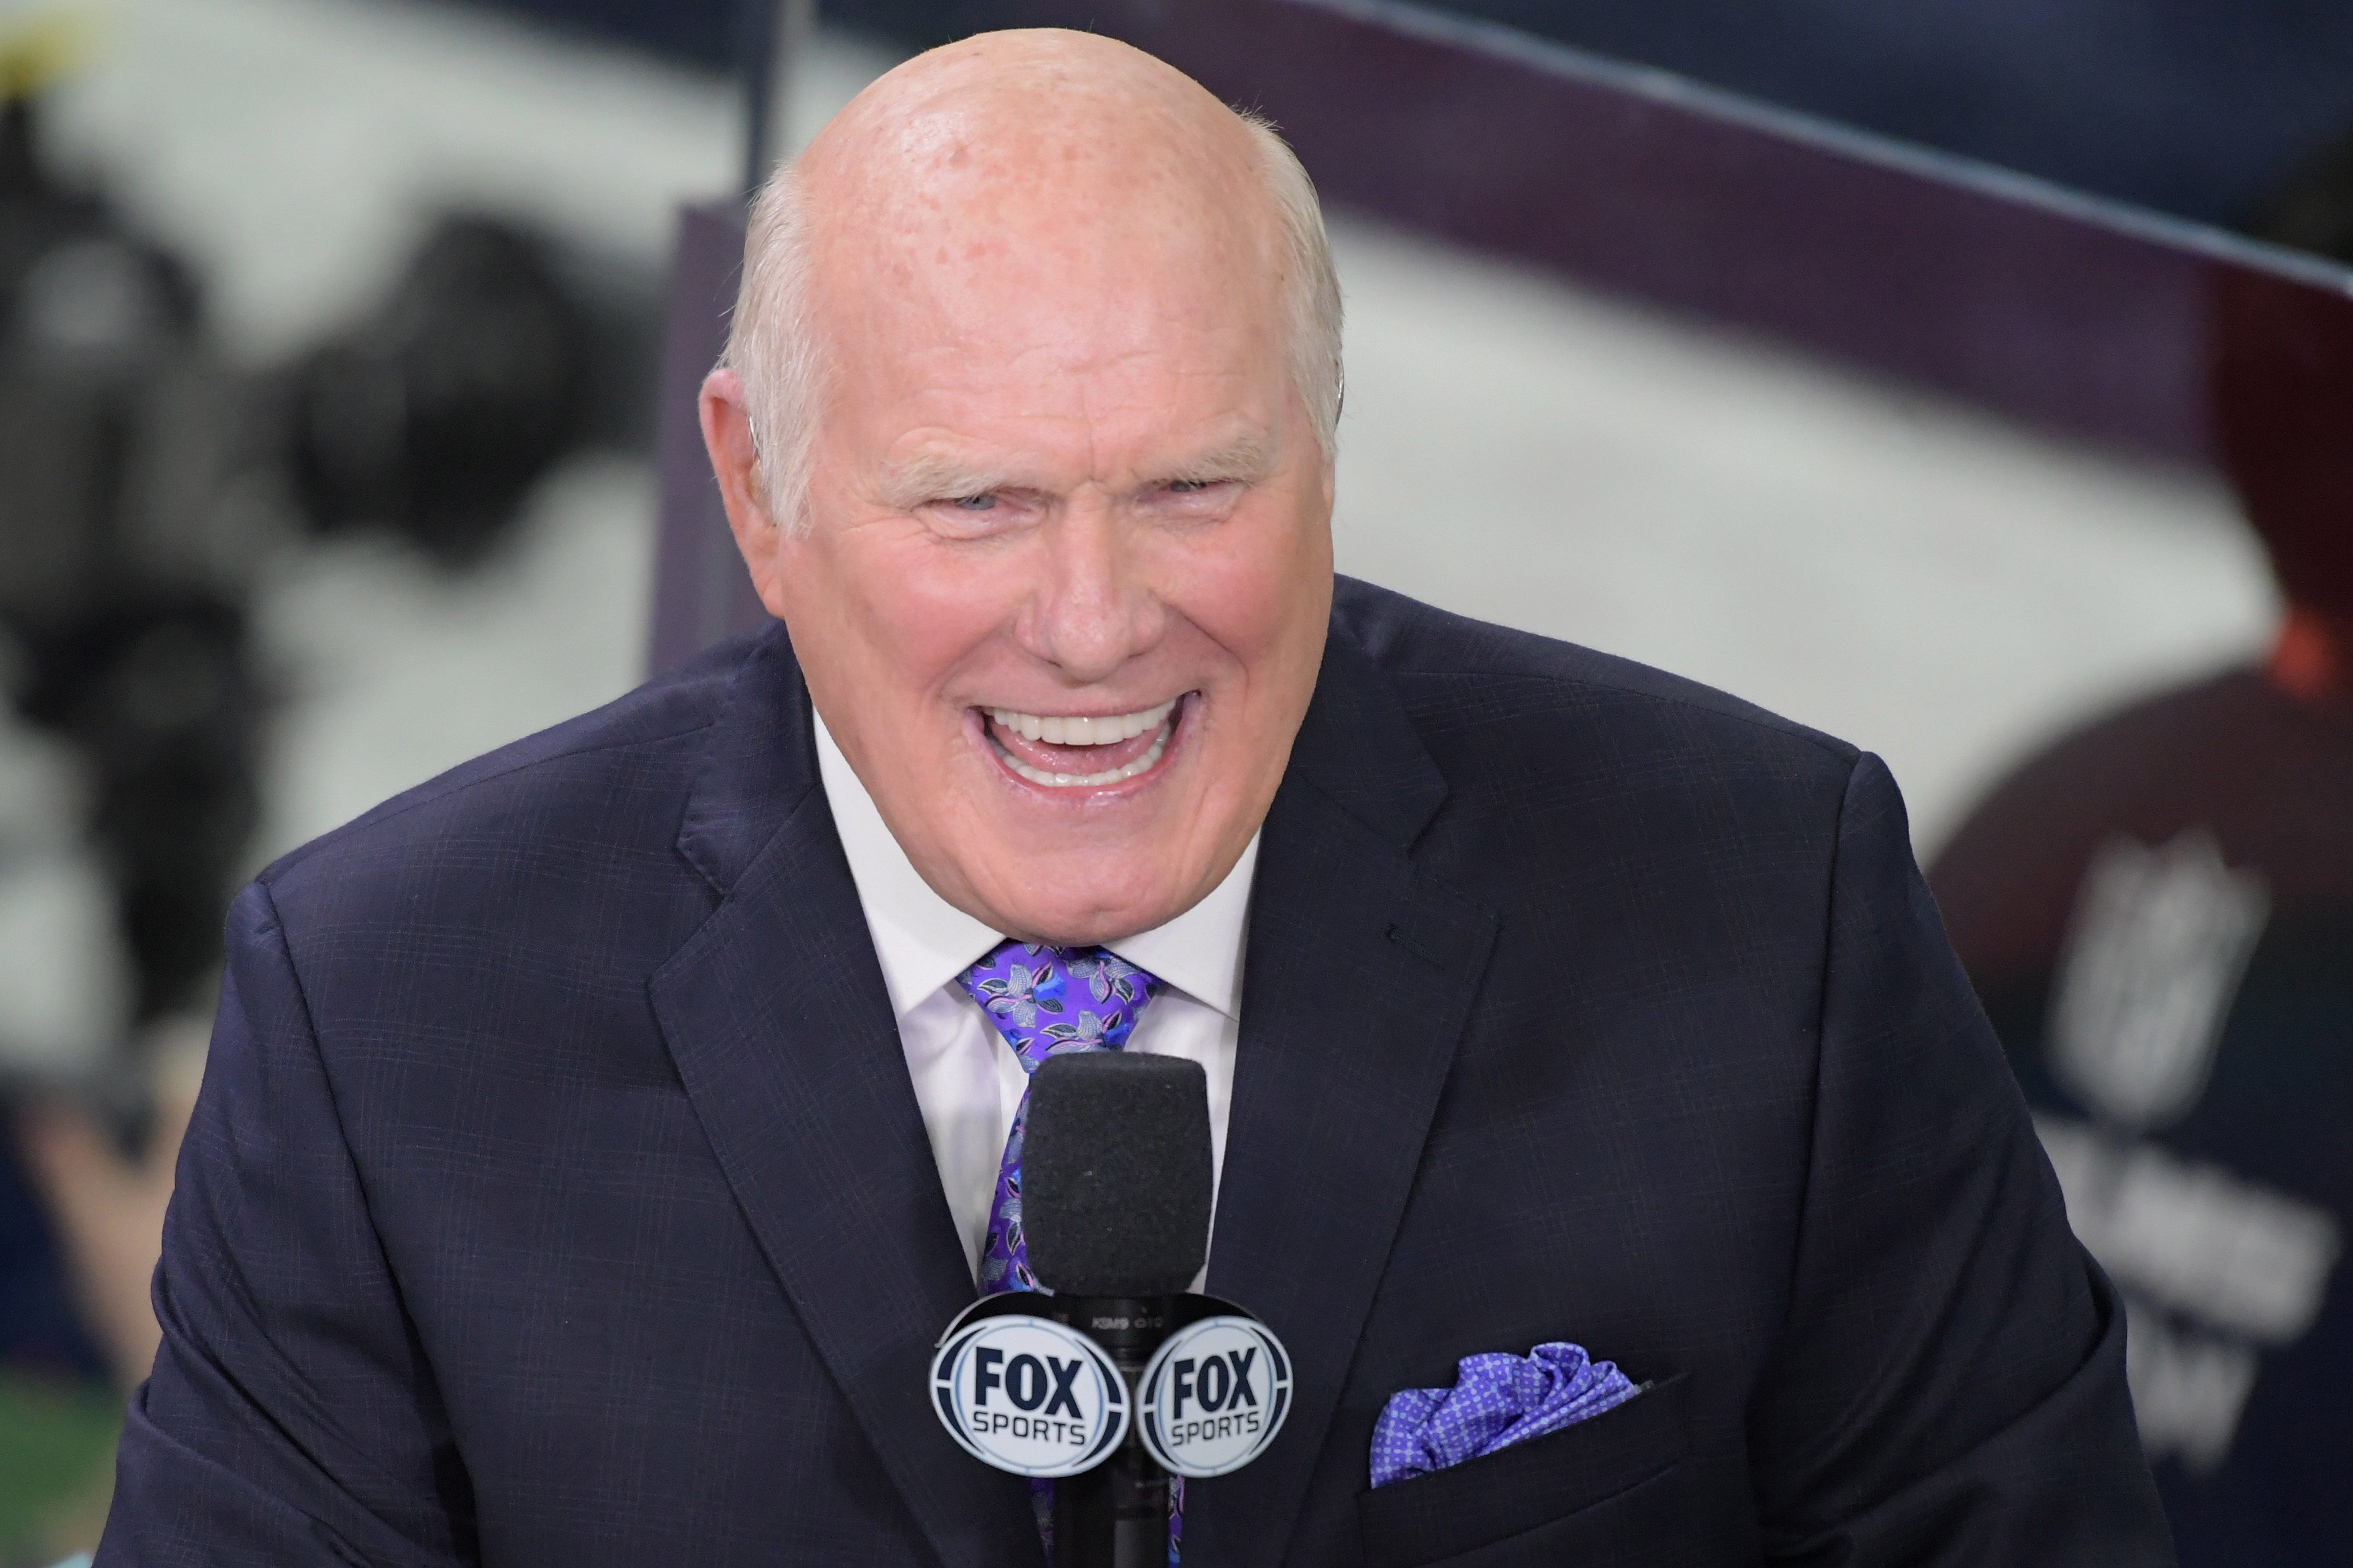 Terry Bradshaw: 'I can't stand players like Antonio Brown', says he wouldn't throw to him